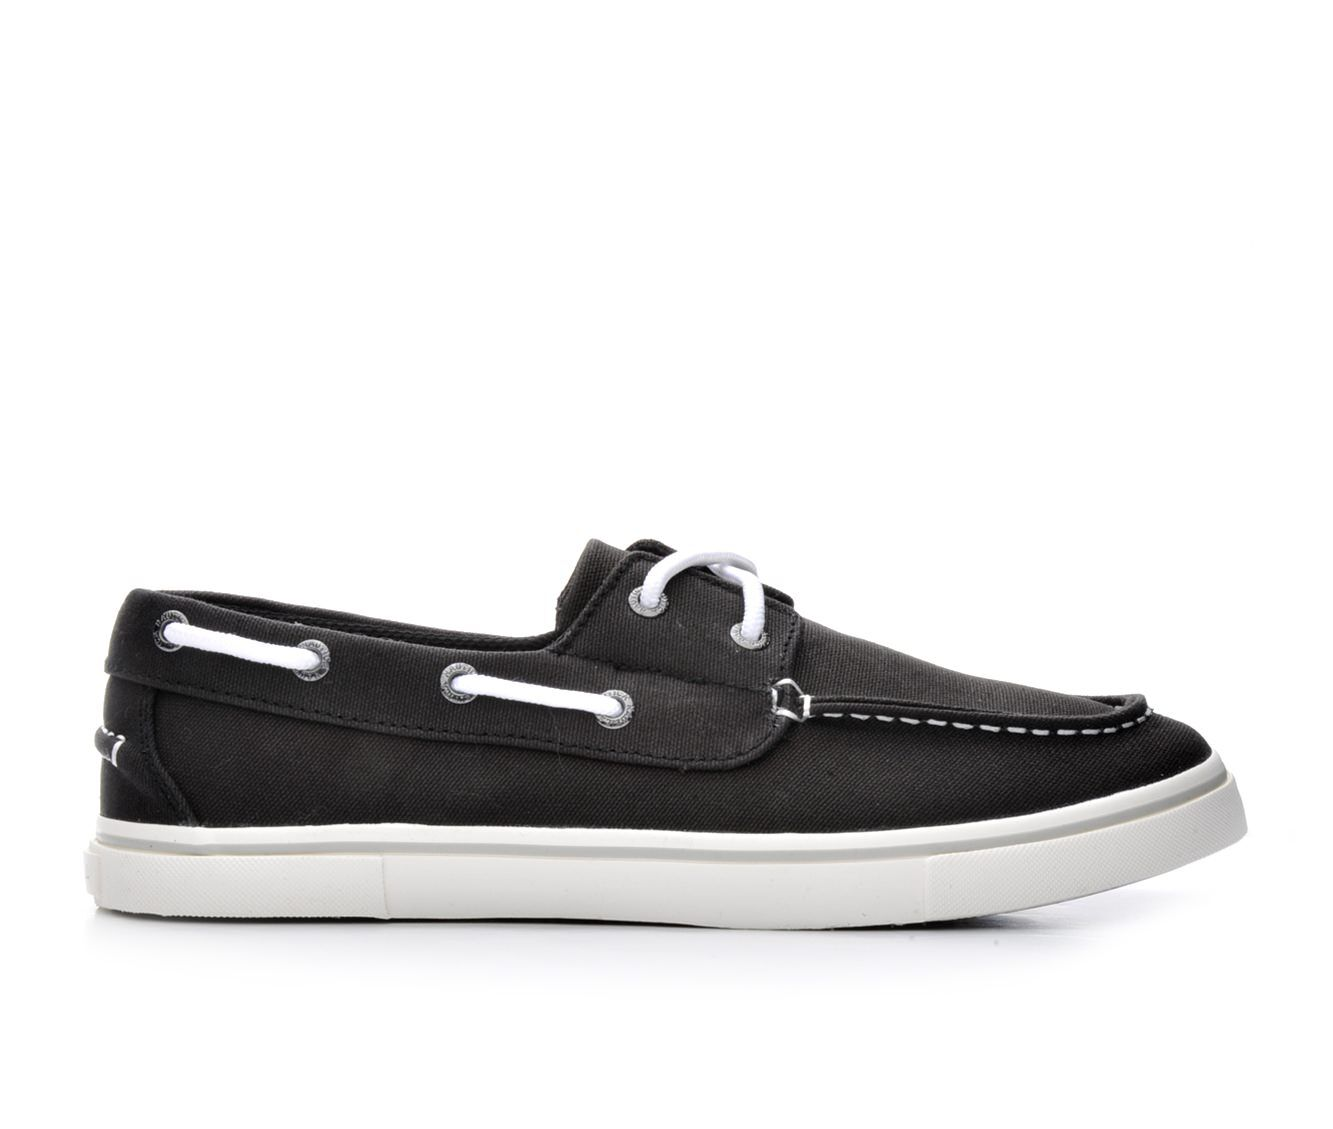 kenneth cole reaction shoes great galley ship top